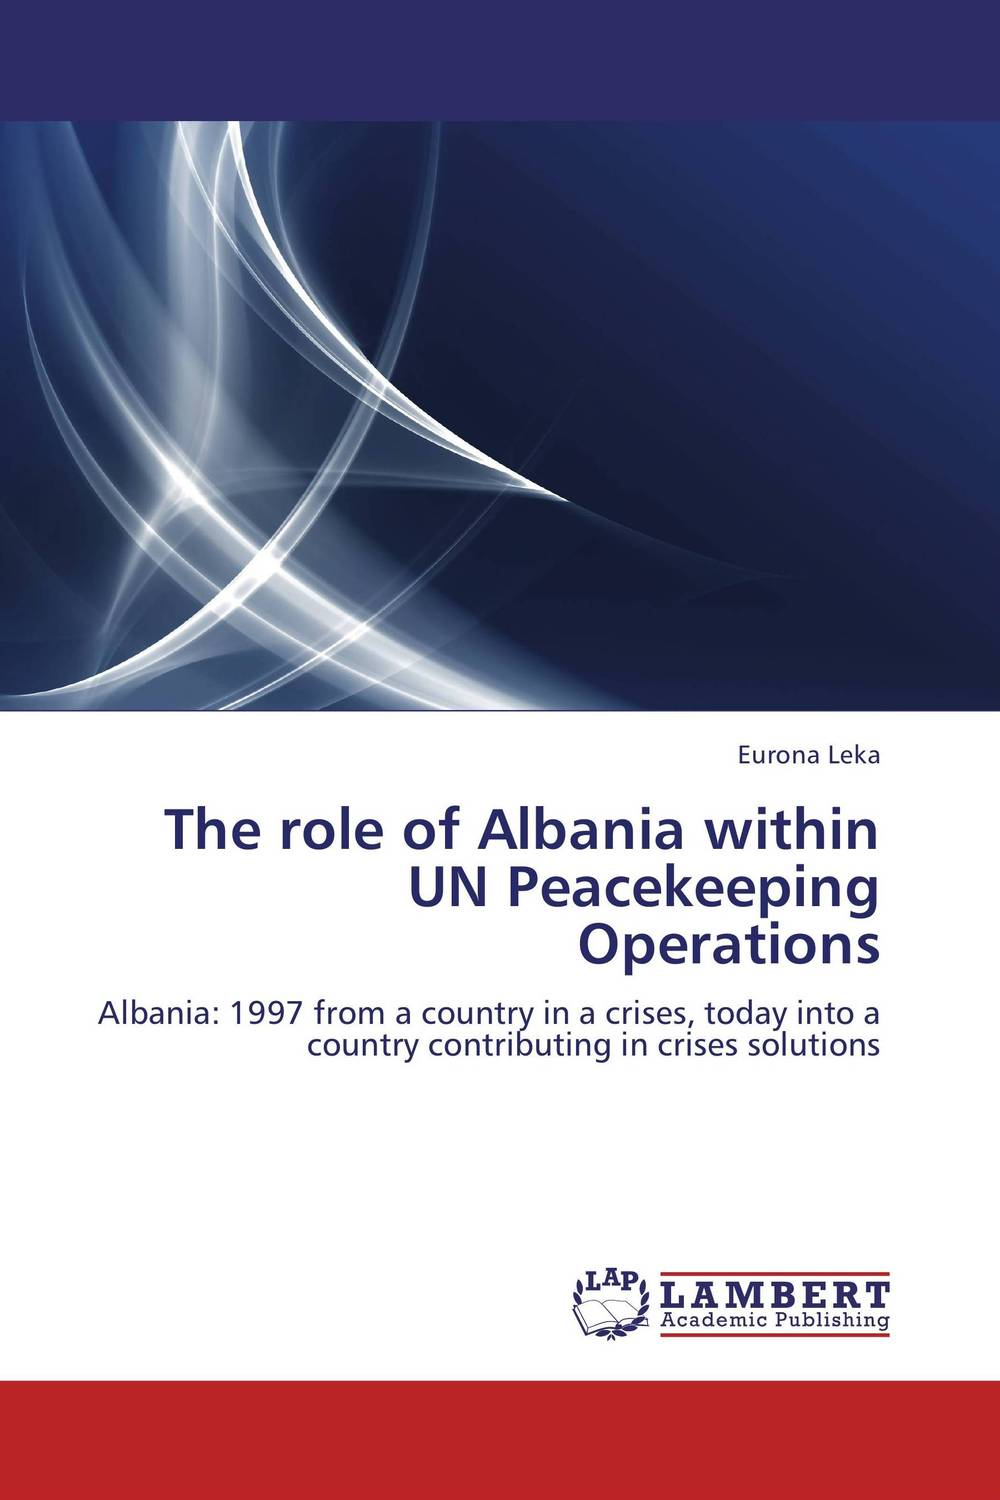 The role of Albania within UN Peacekeeping Operations the role of absurdity within english humour